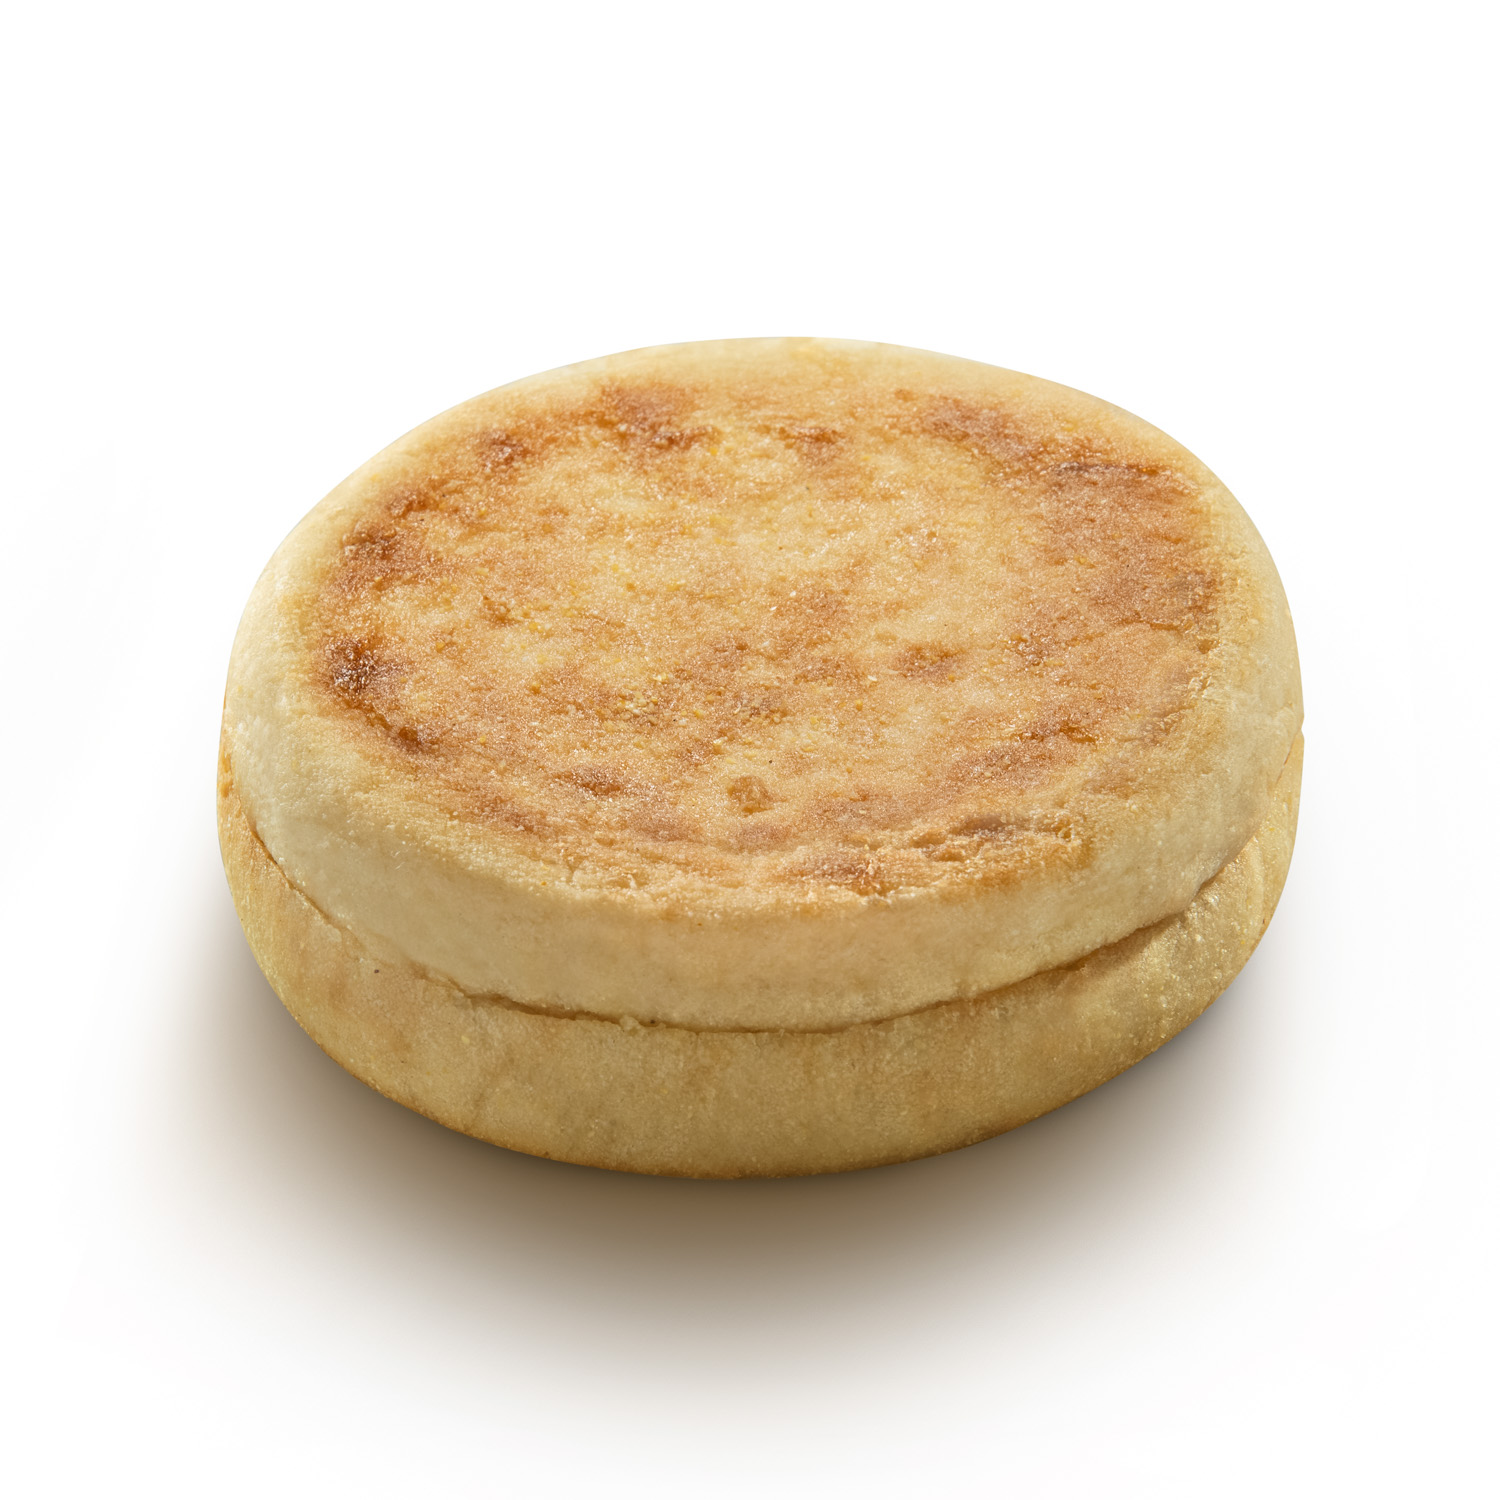 ENGLISH MUFFIN CONGELADO